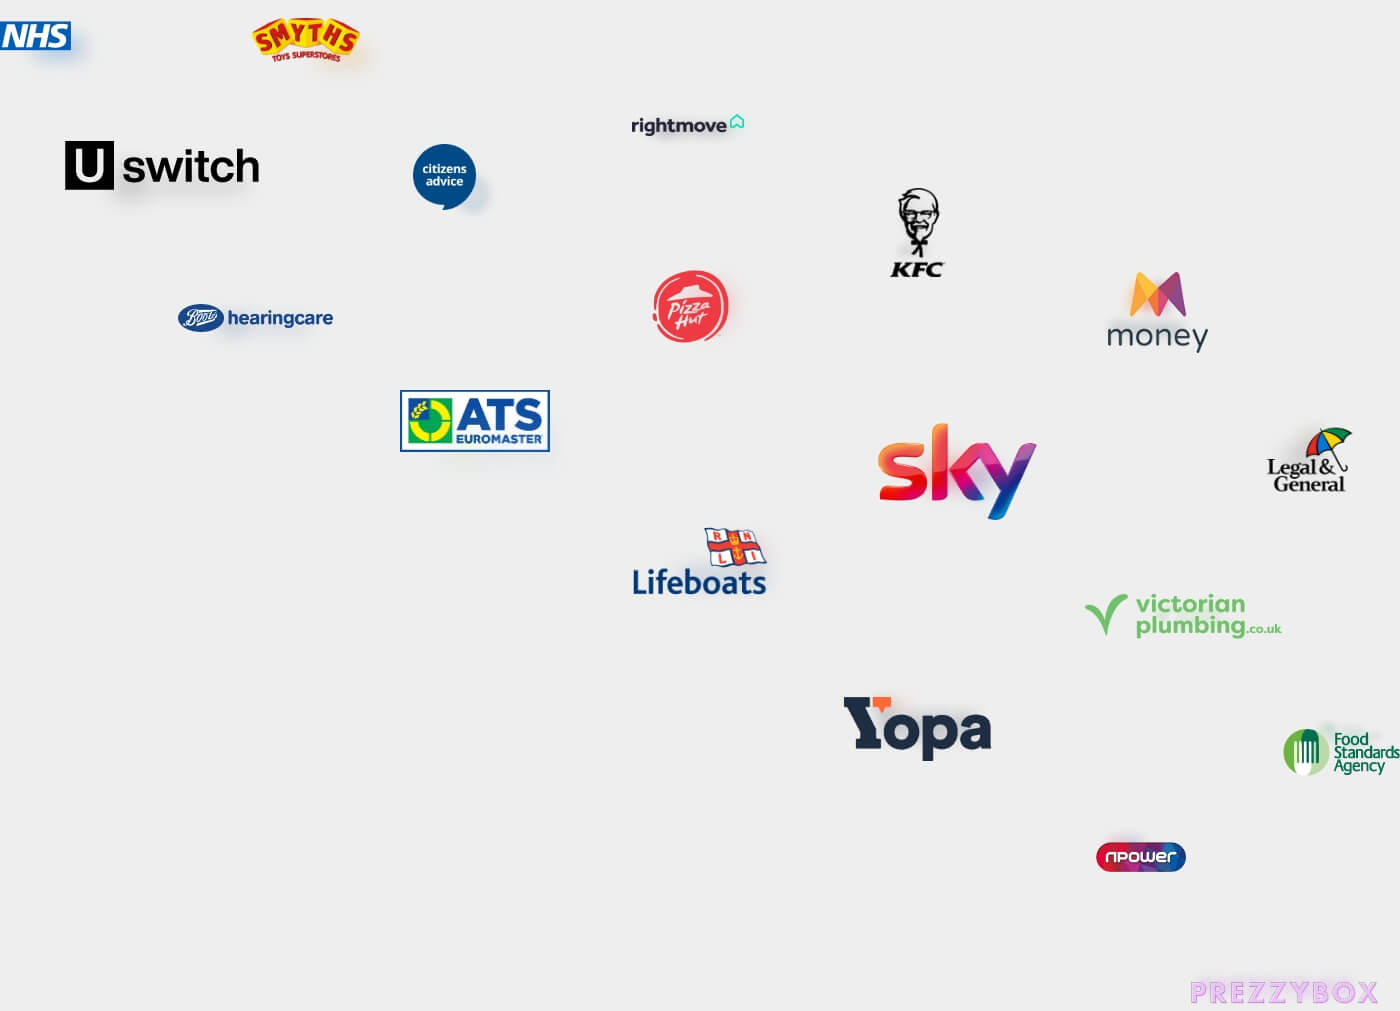 Postcoder customer stories - An image displaying the logos of some of our customers